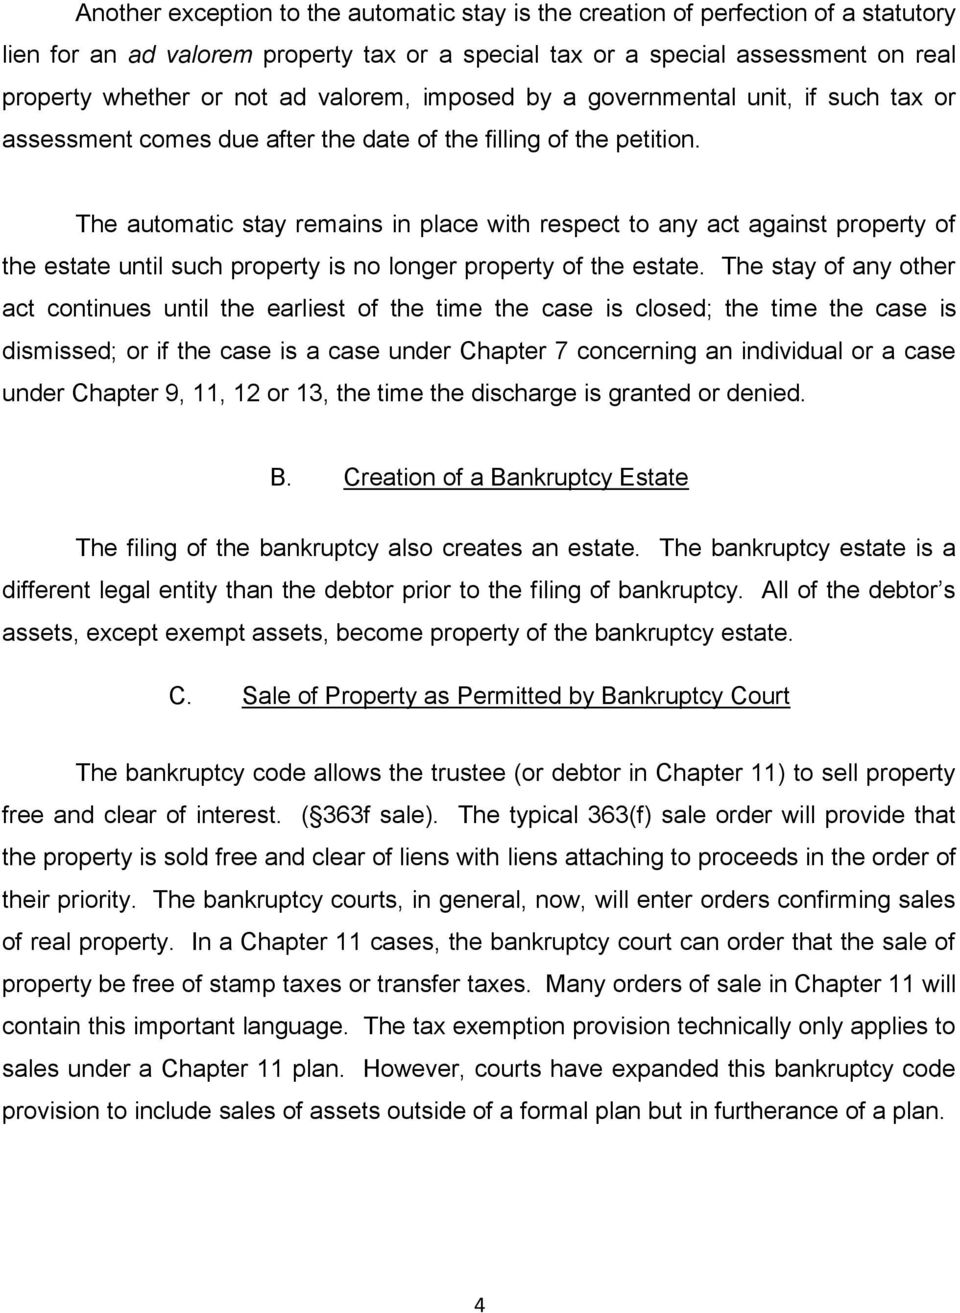 The automatic stay remains in place with respect to any act against property of the estate until such property is no longer property of the estate.